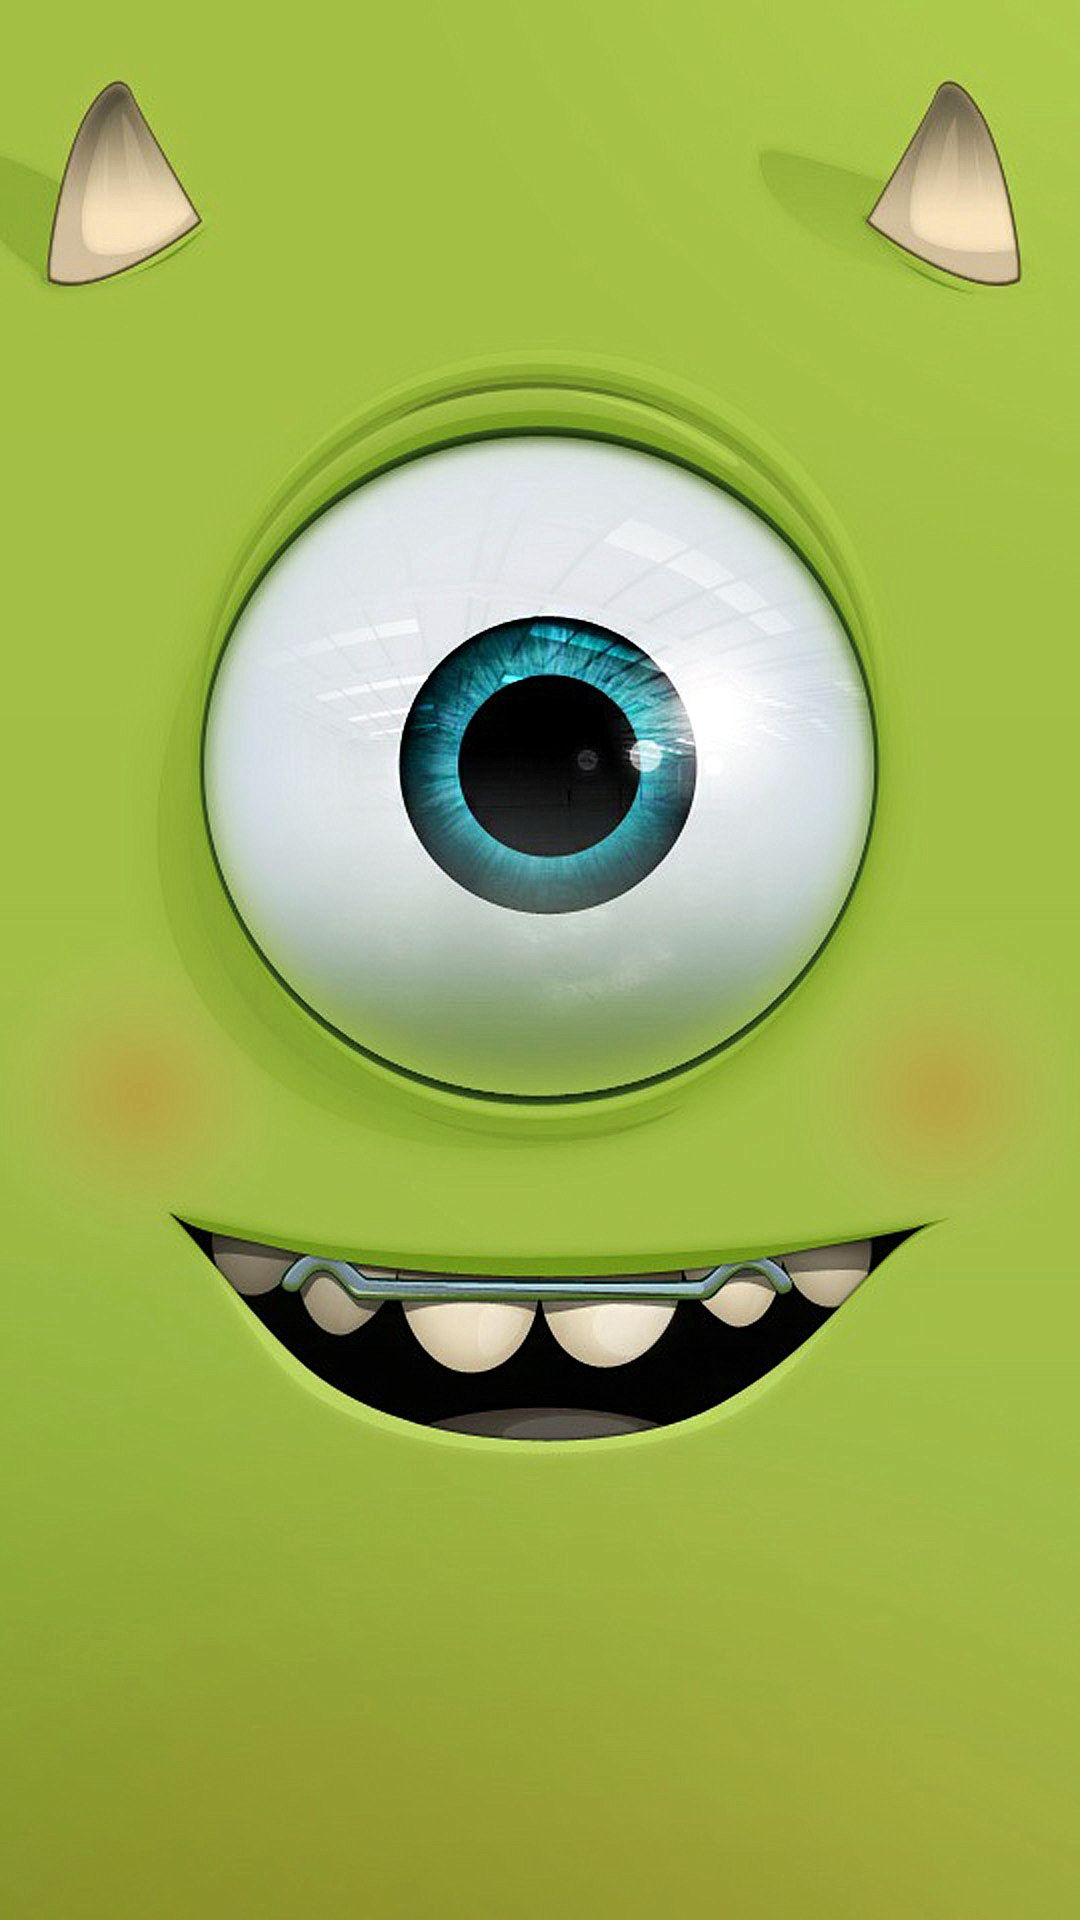 Funny Cutie Monster Inc Tap To See More Cute Cartoon Wallpapers